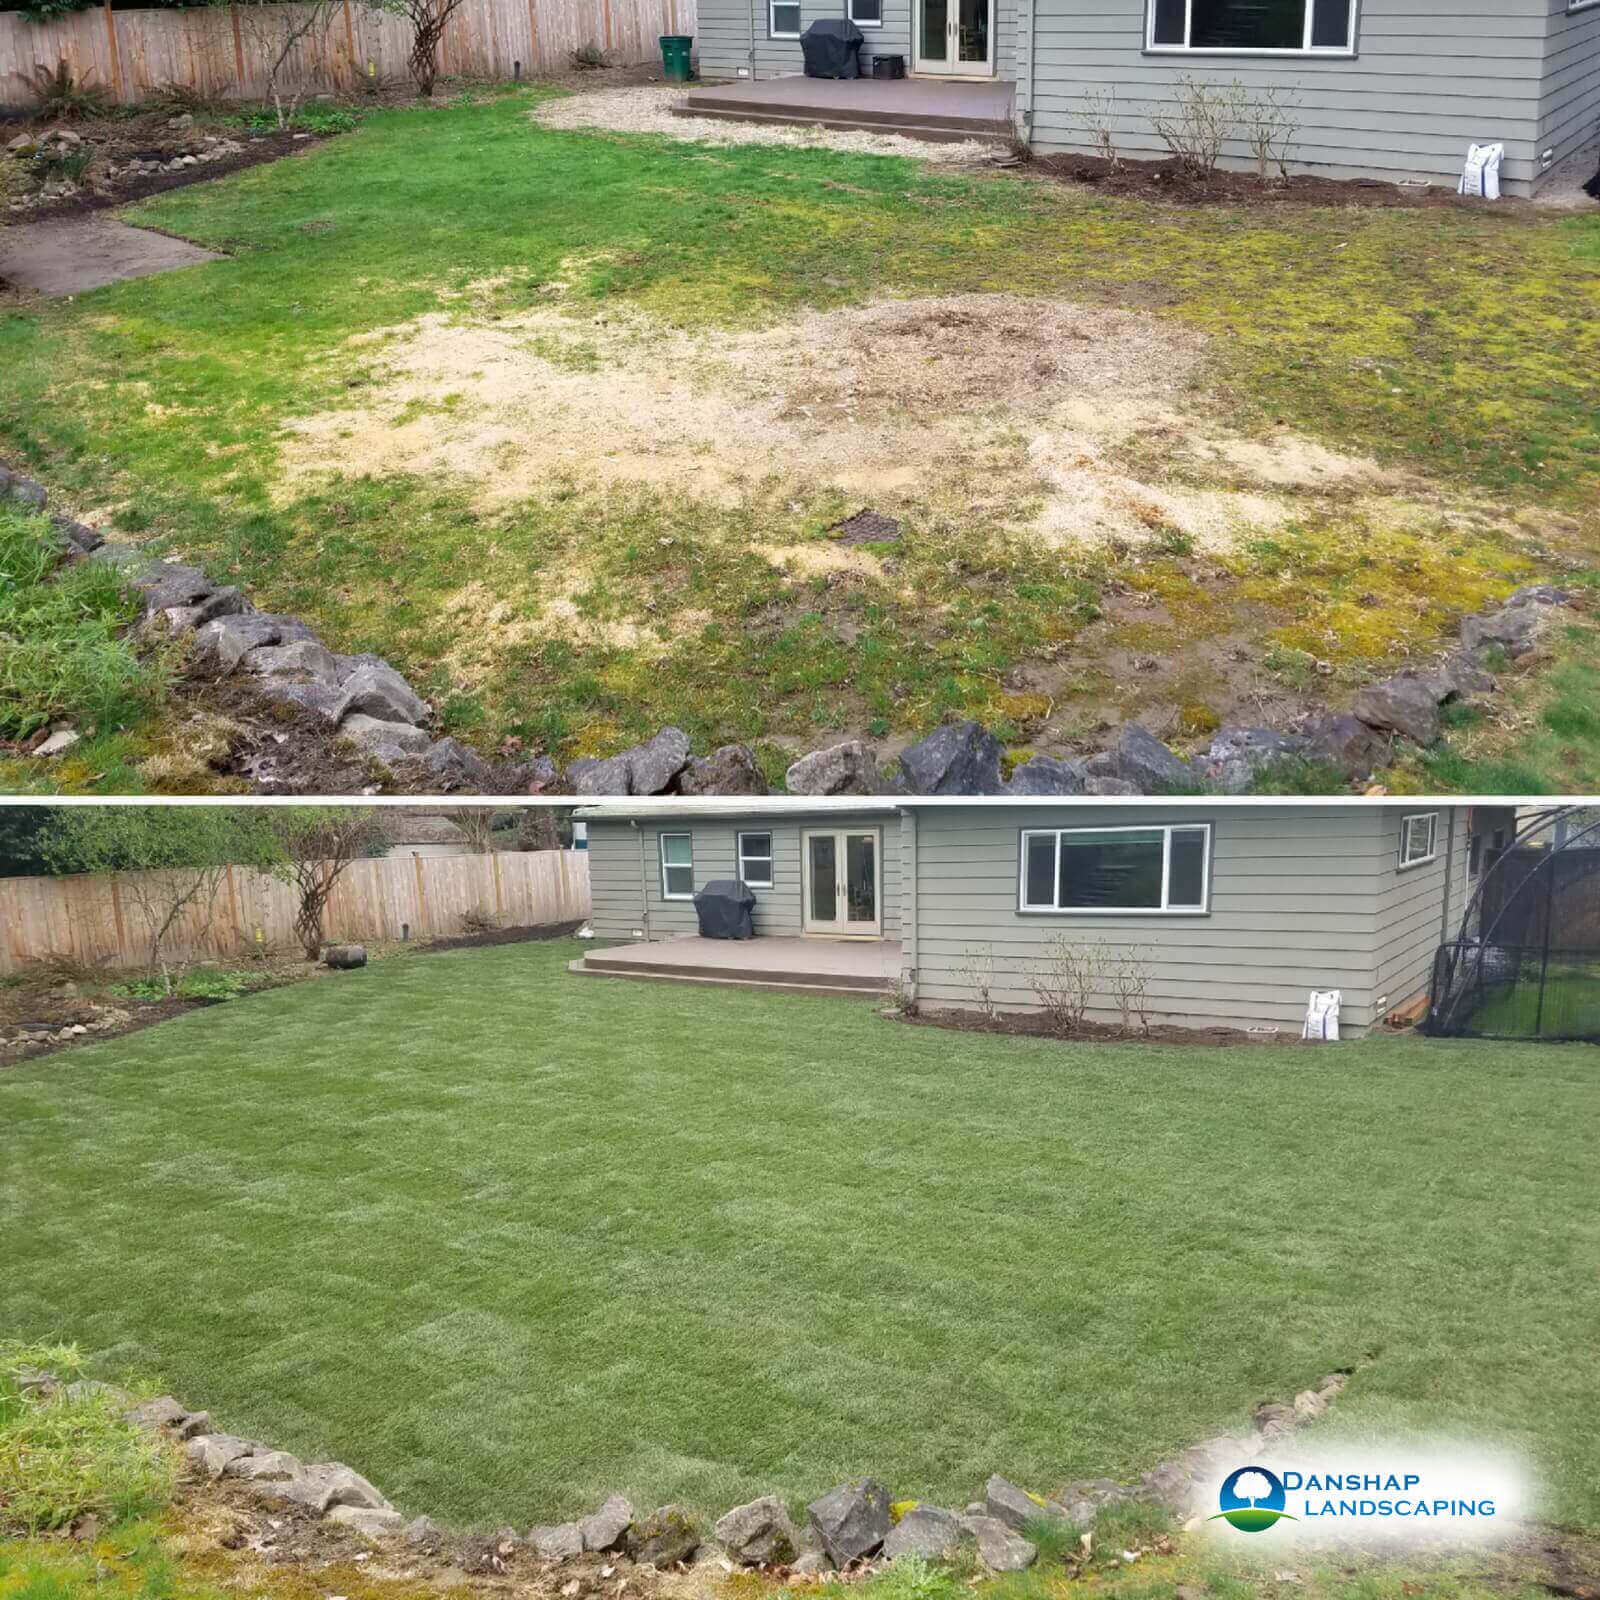 Sod-Replacement-Danshaplandscape-37